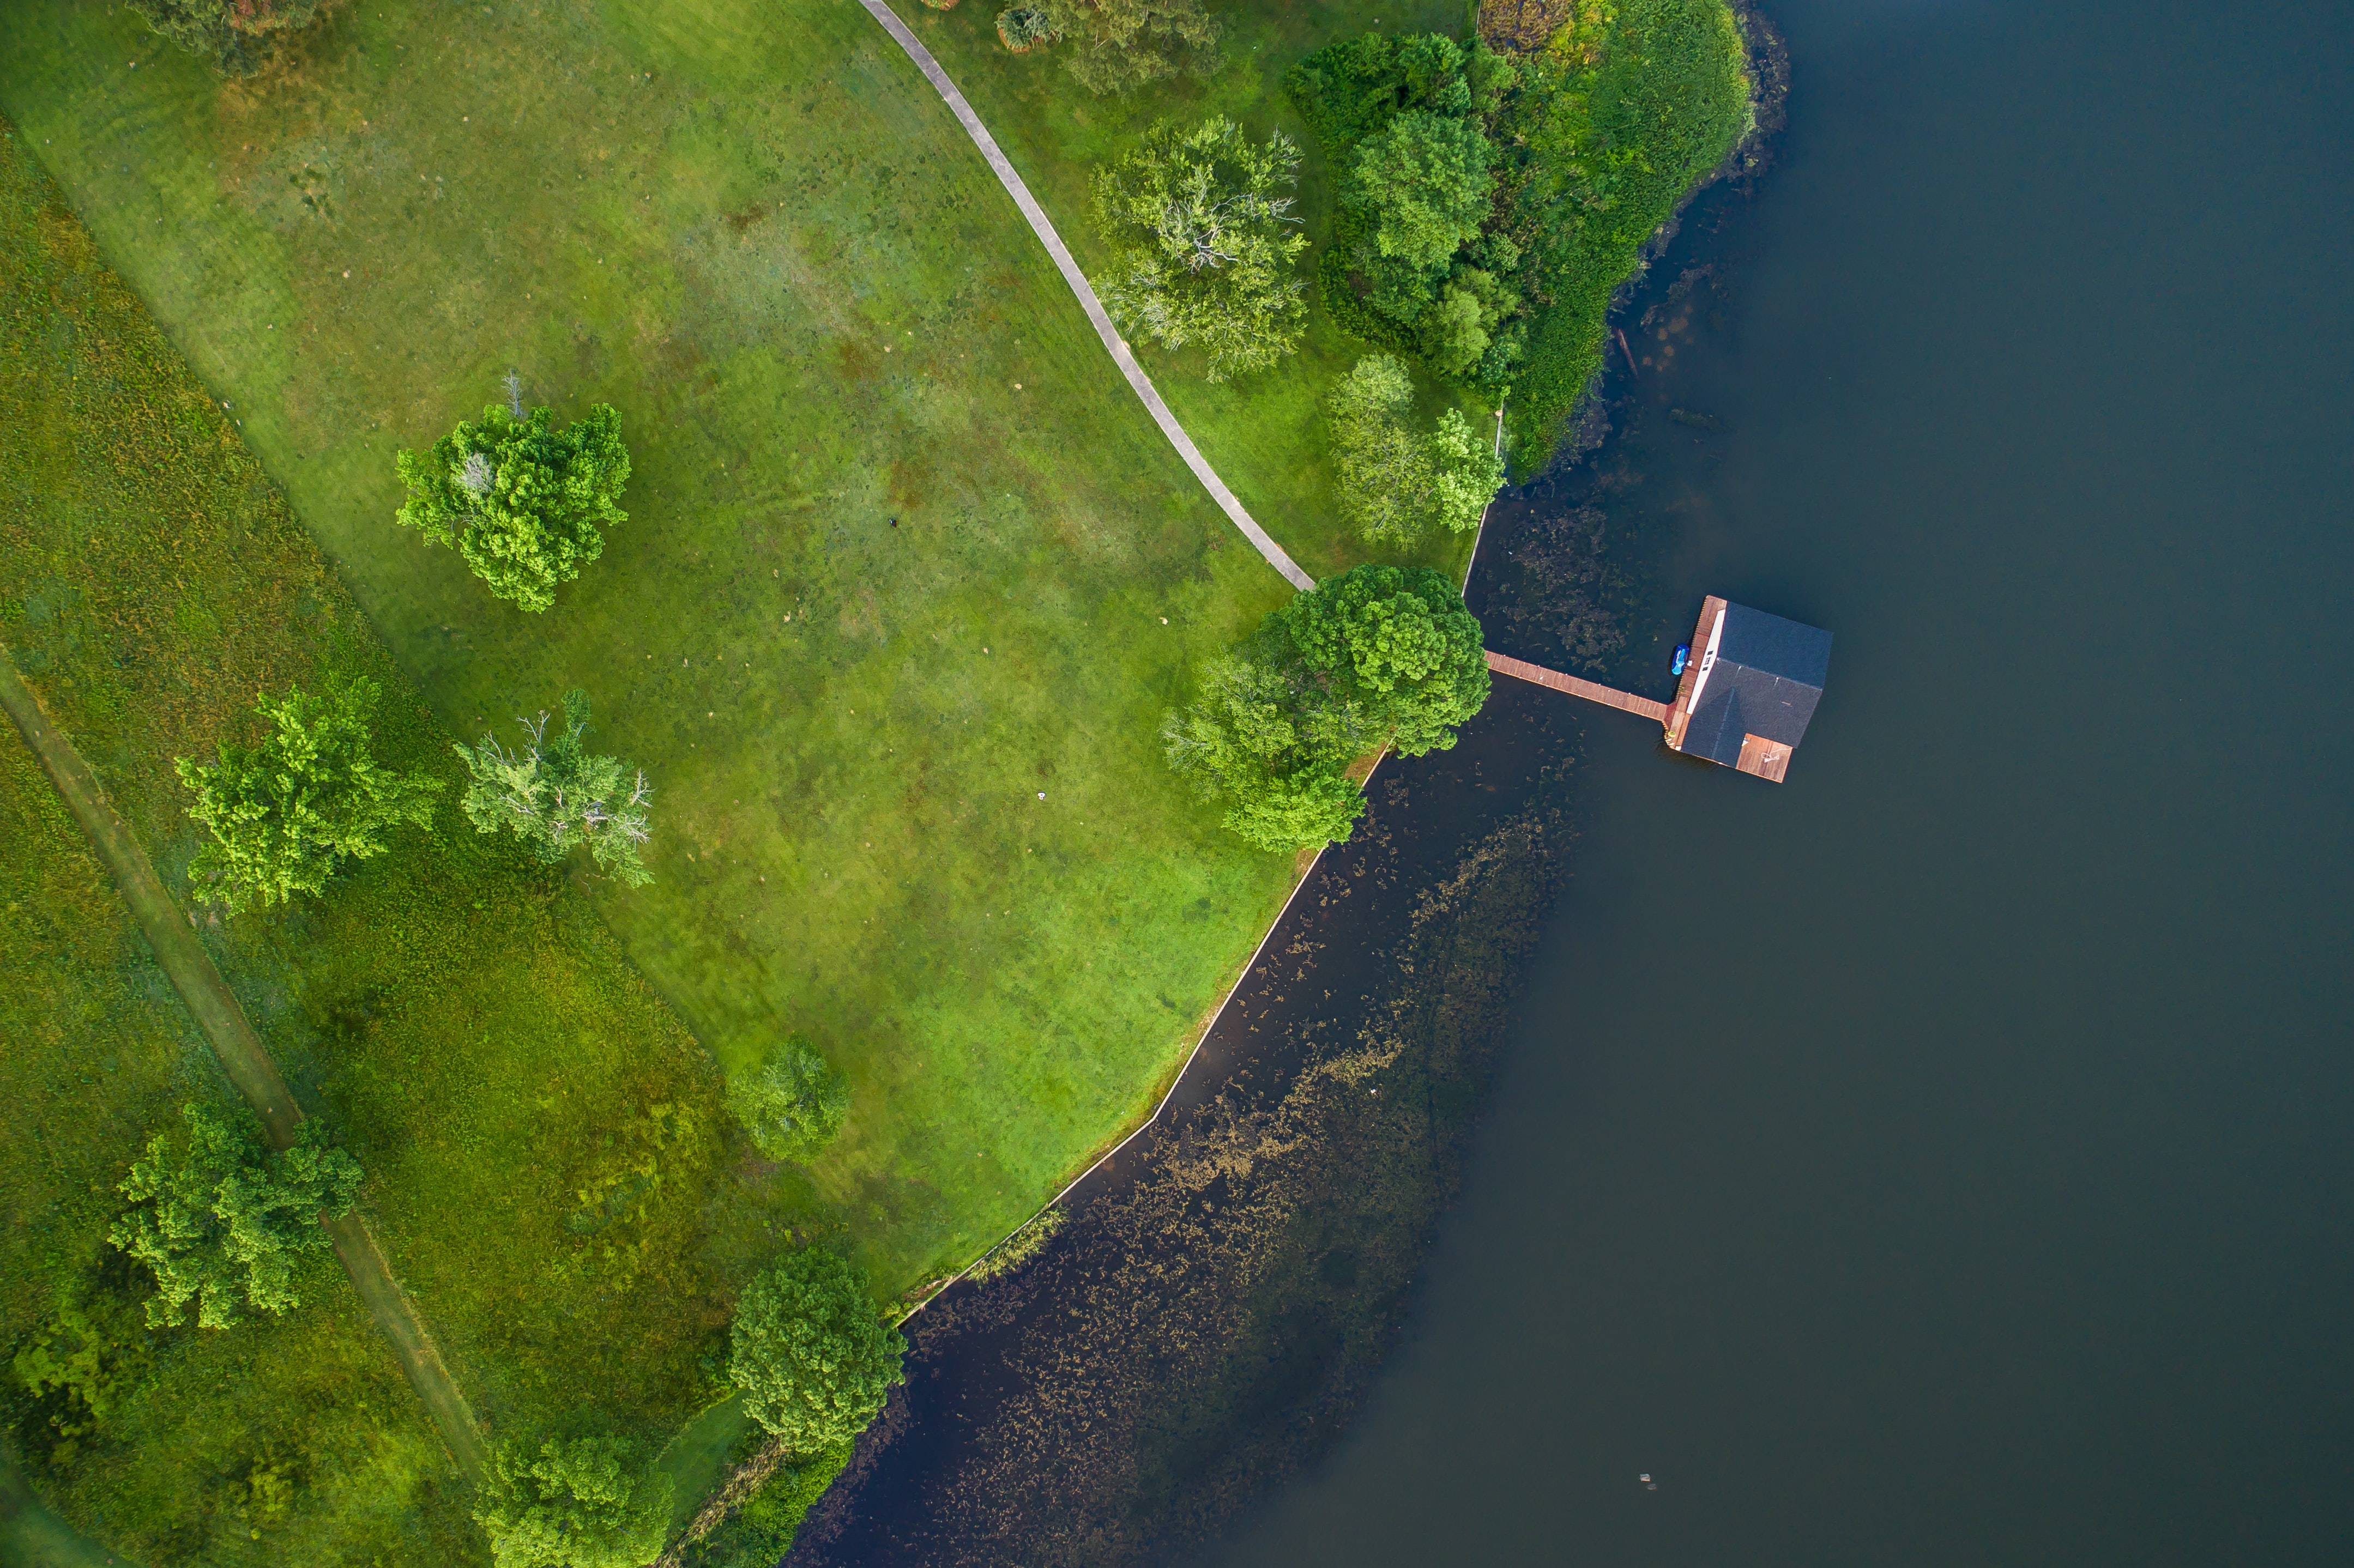 Overhead view of a cabin on the lake near a green landscape